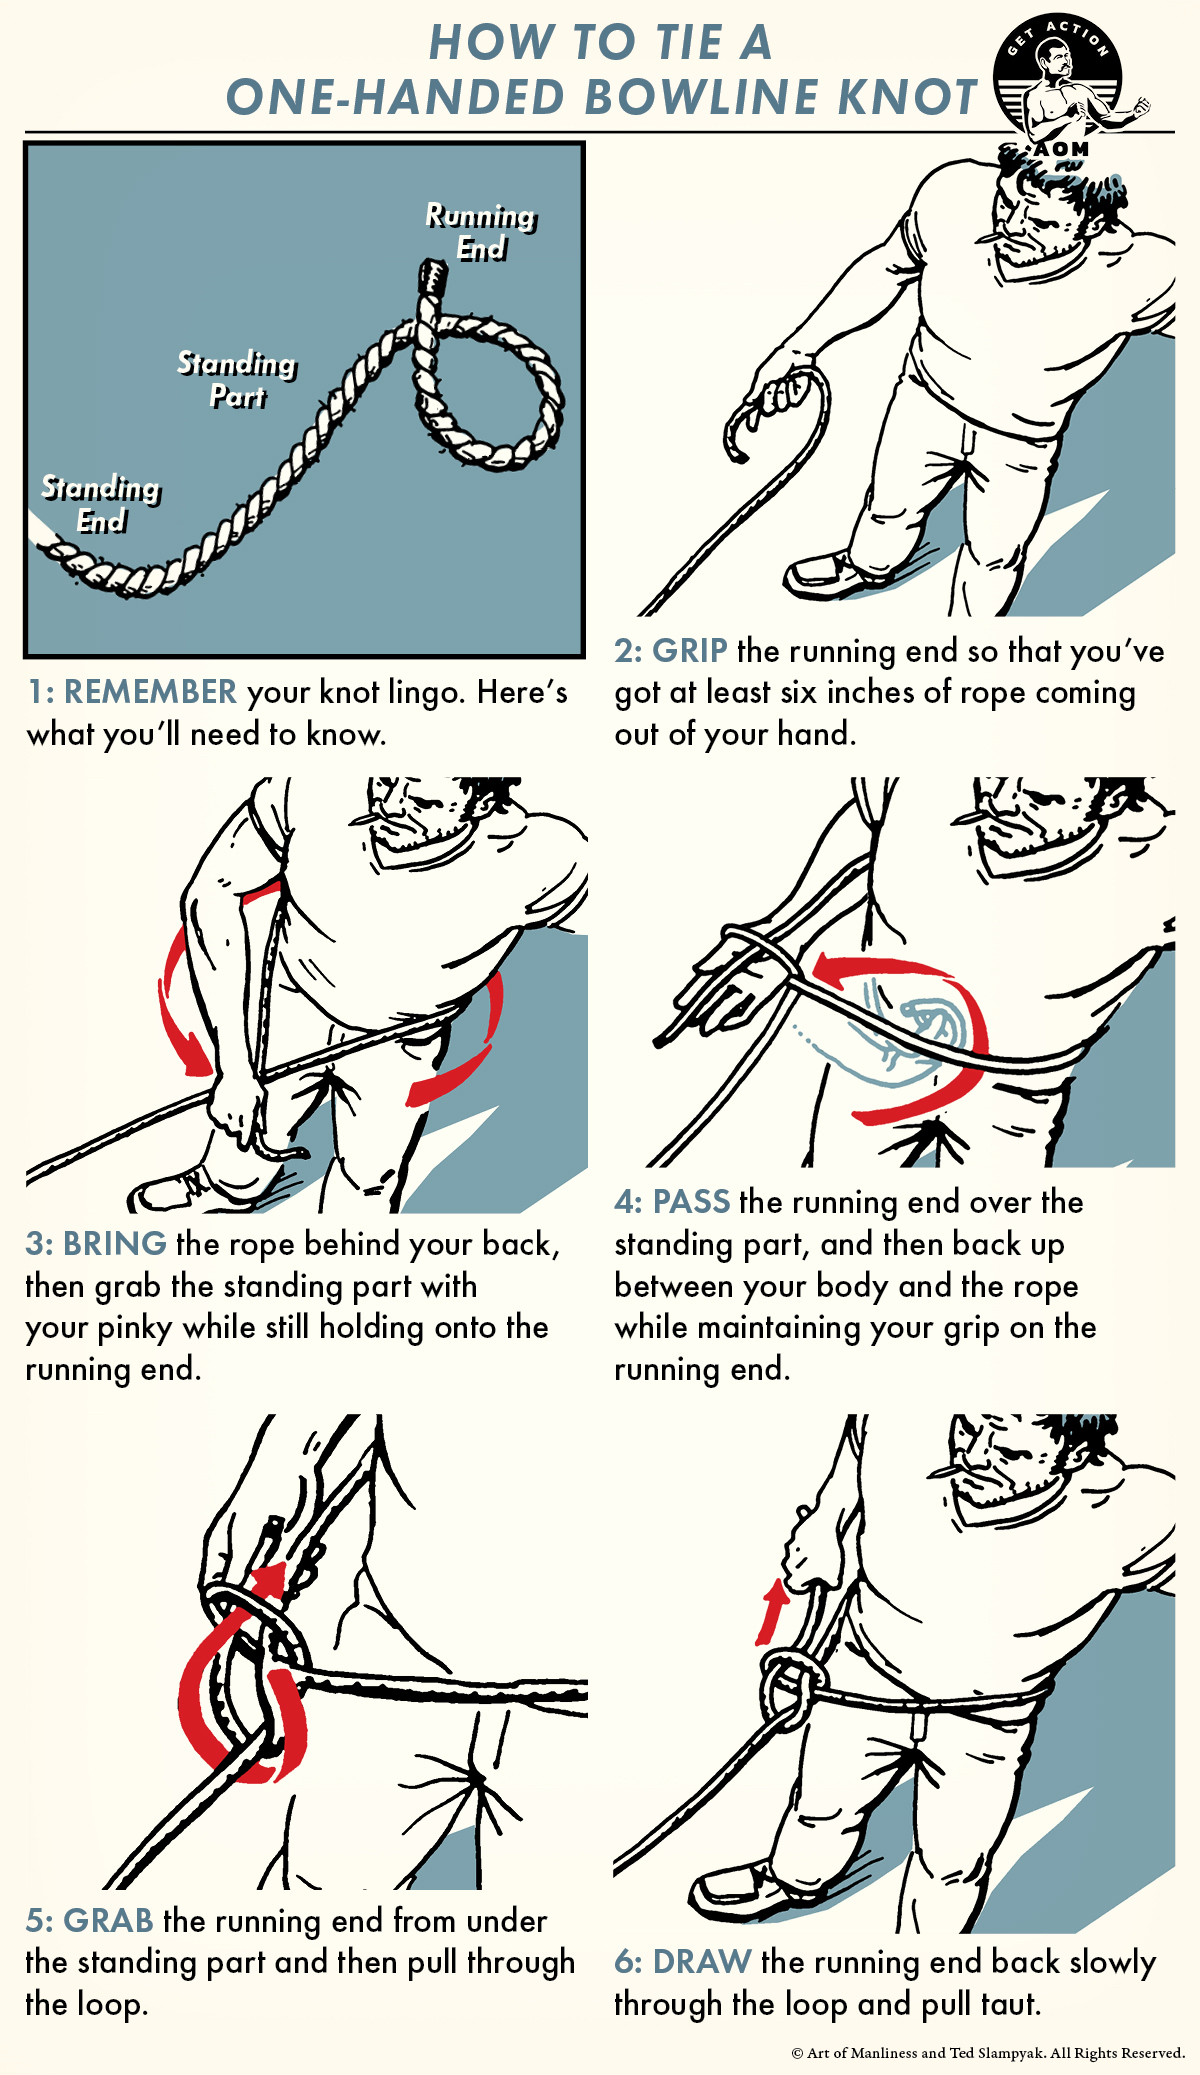 Poster by Art of Manliness about Tieing a one-Handed bowline knot.